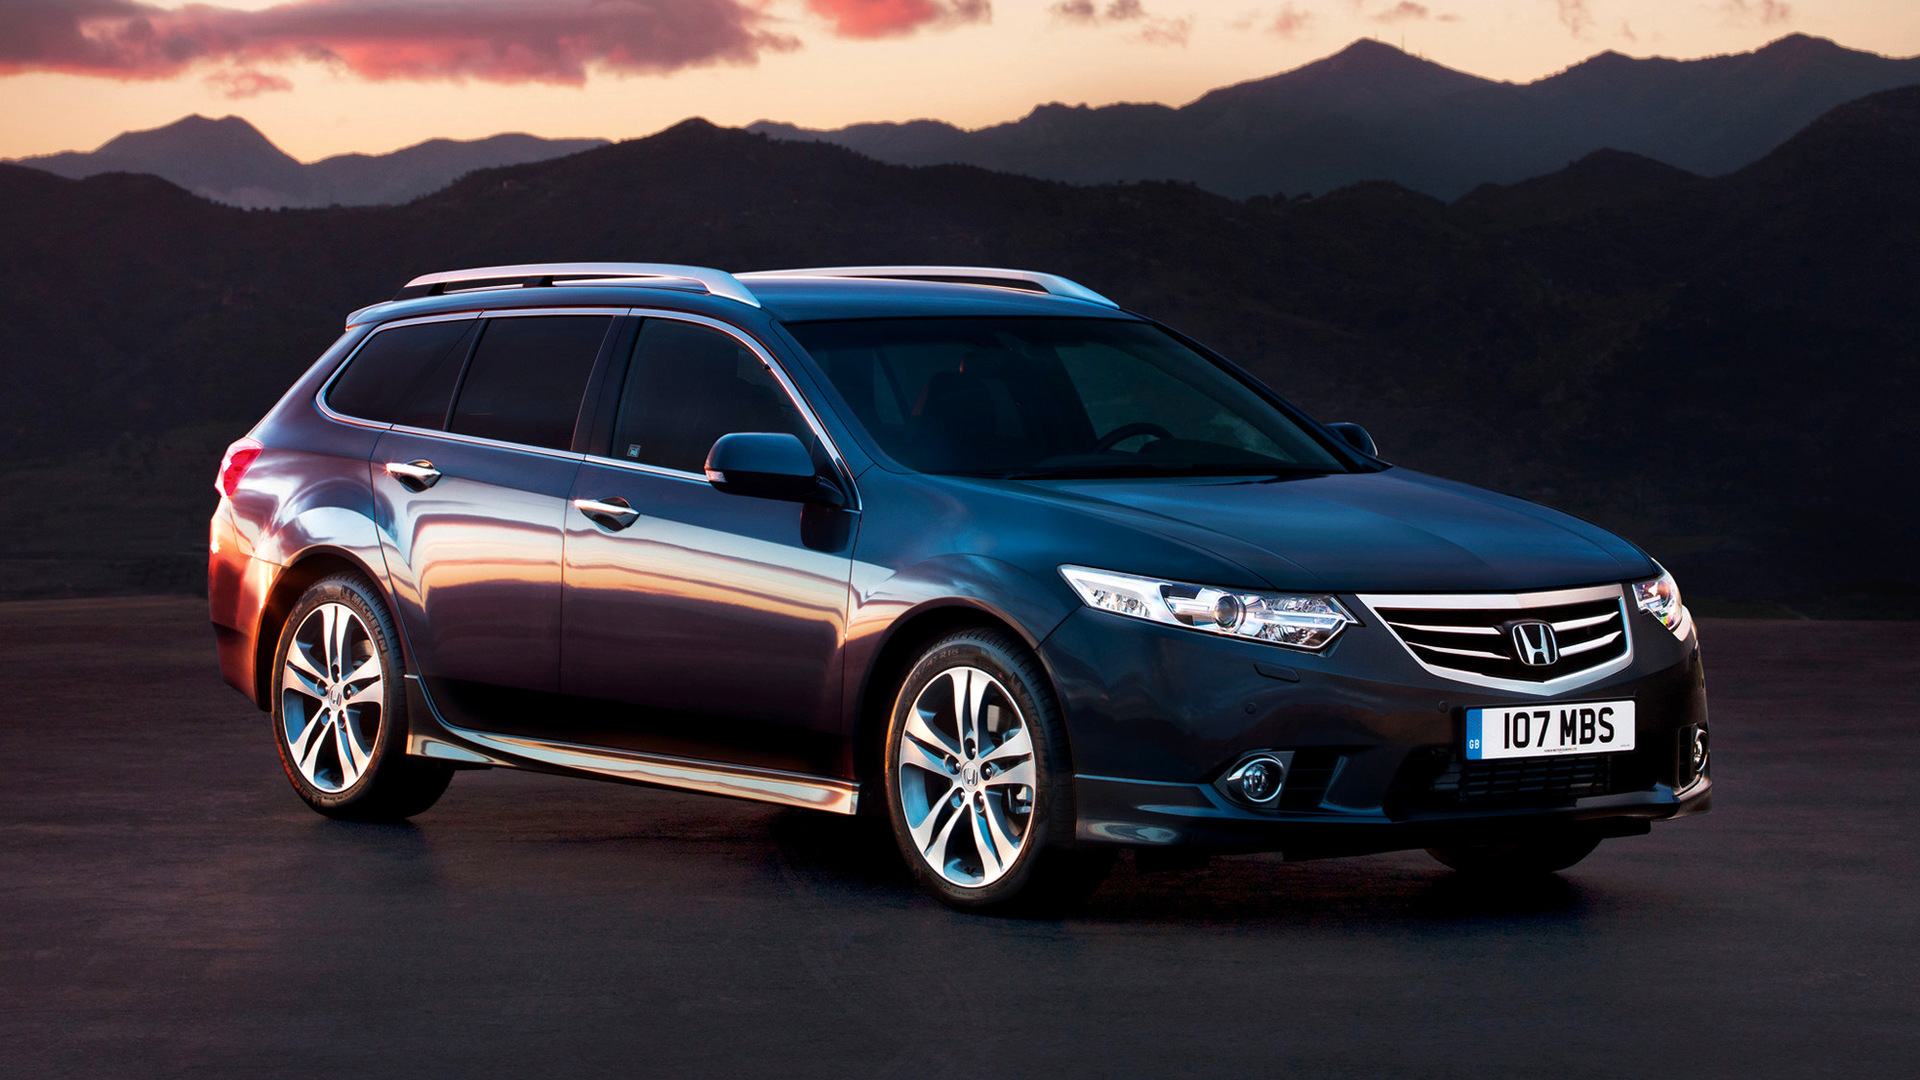 Honda Accord Type S Tourer 2011 Wallpapers And Hd Images